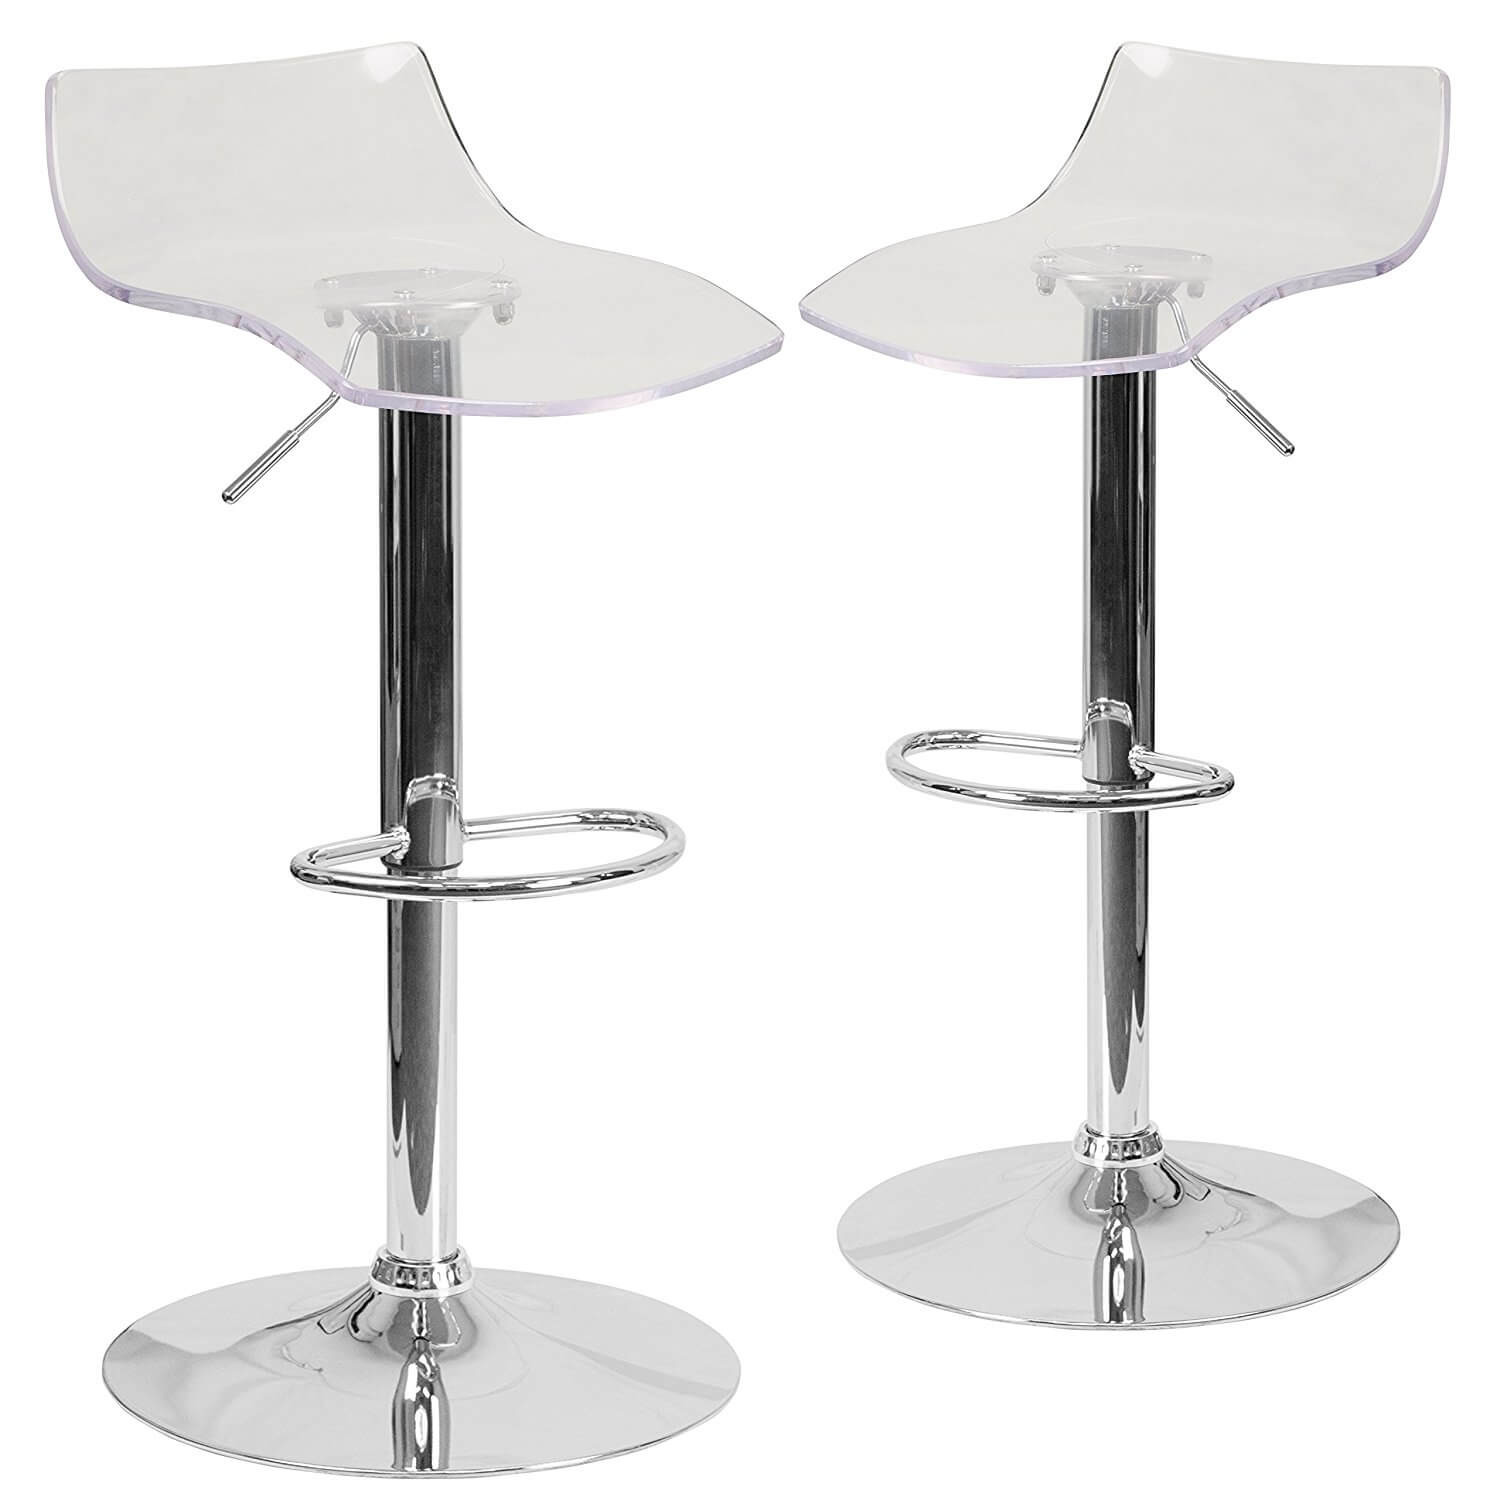 Adjustable Clear Bar Stools, Pack of 2